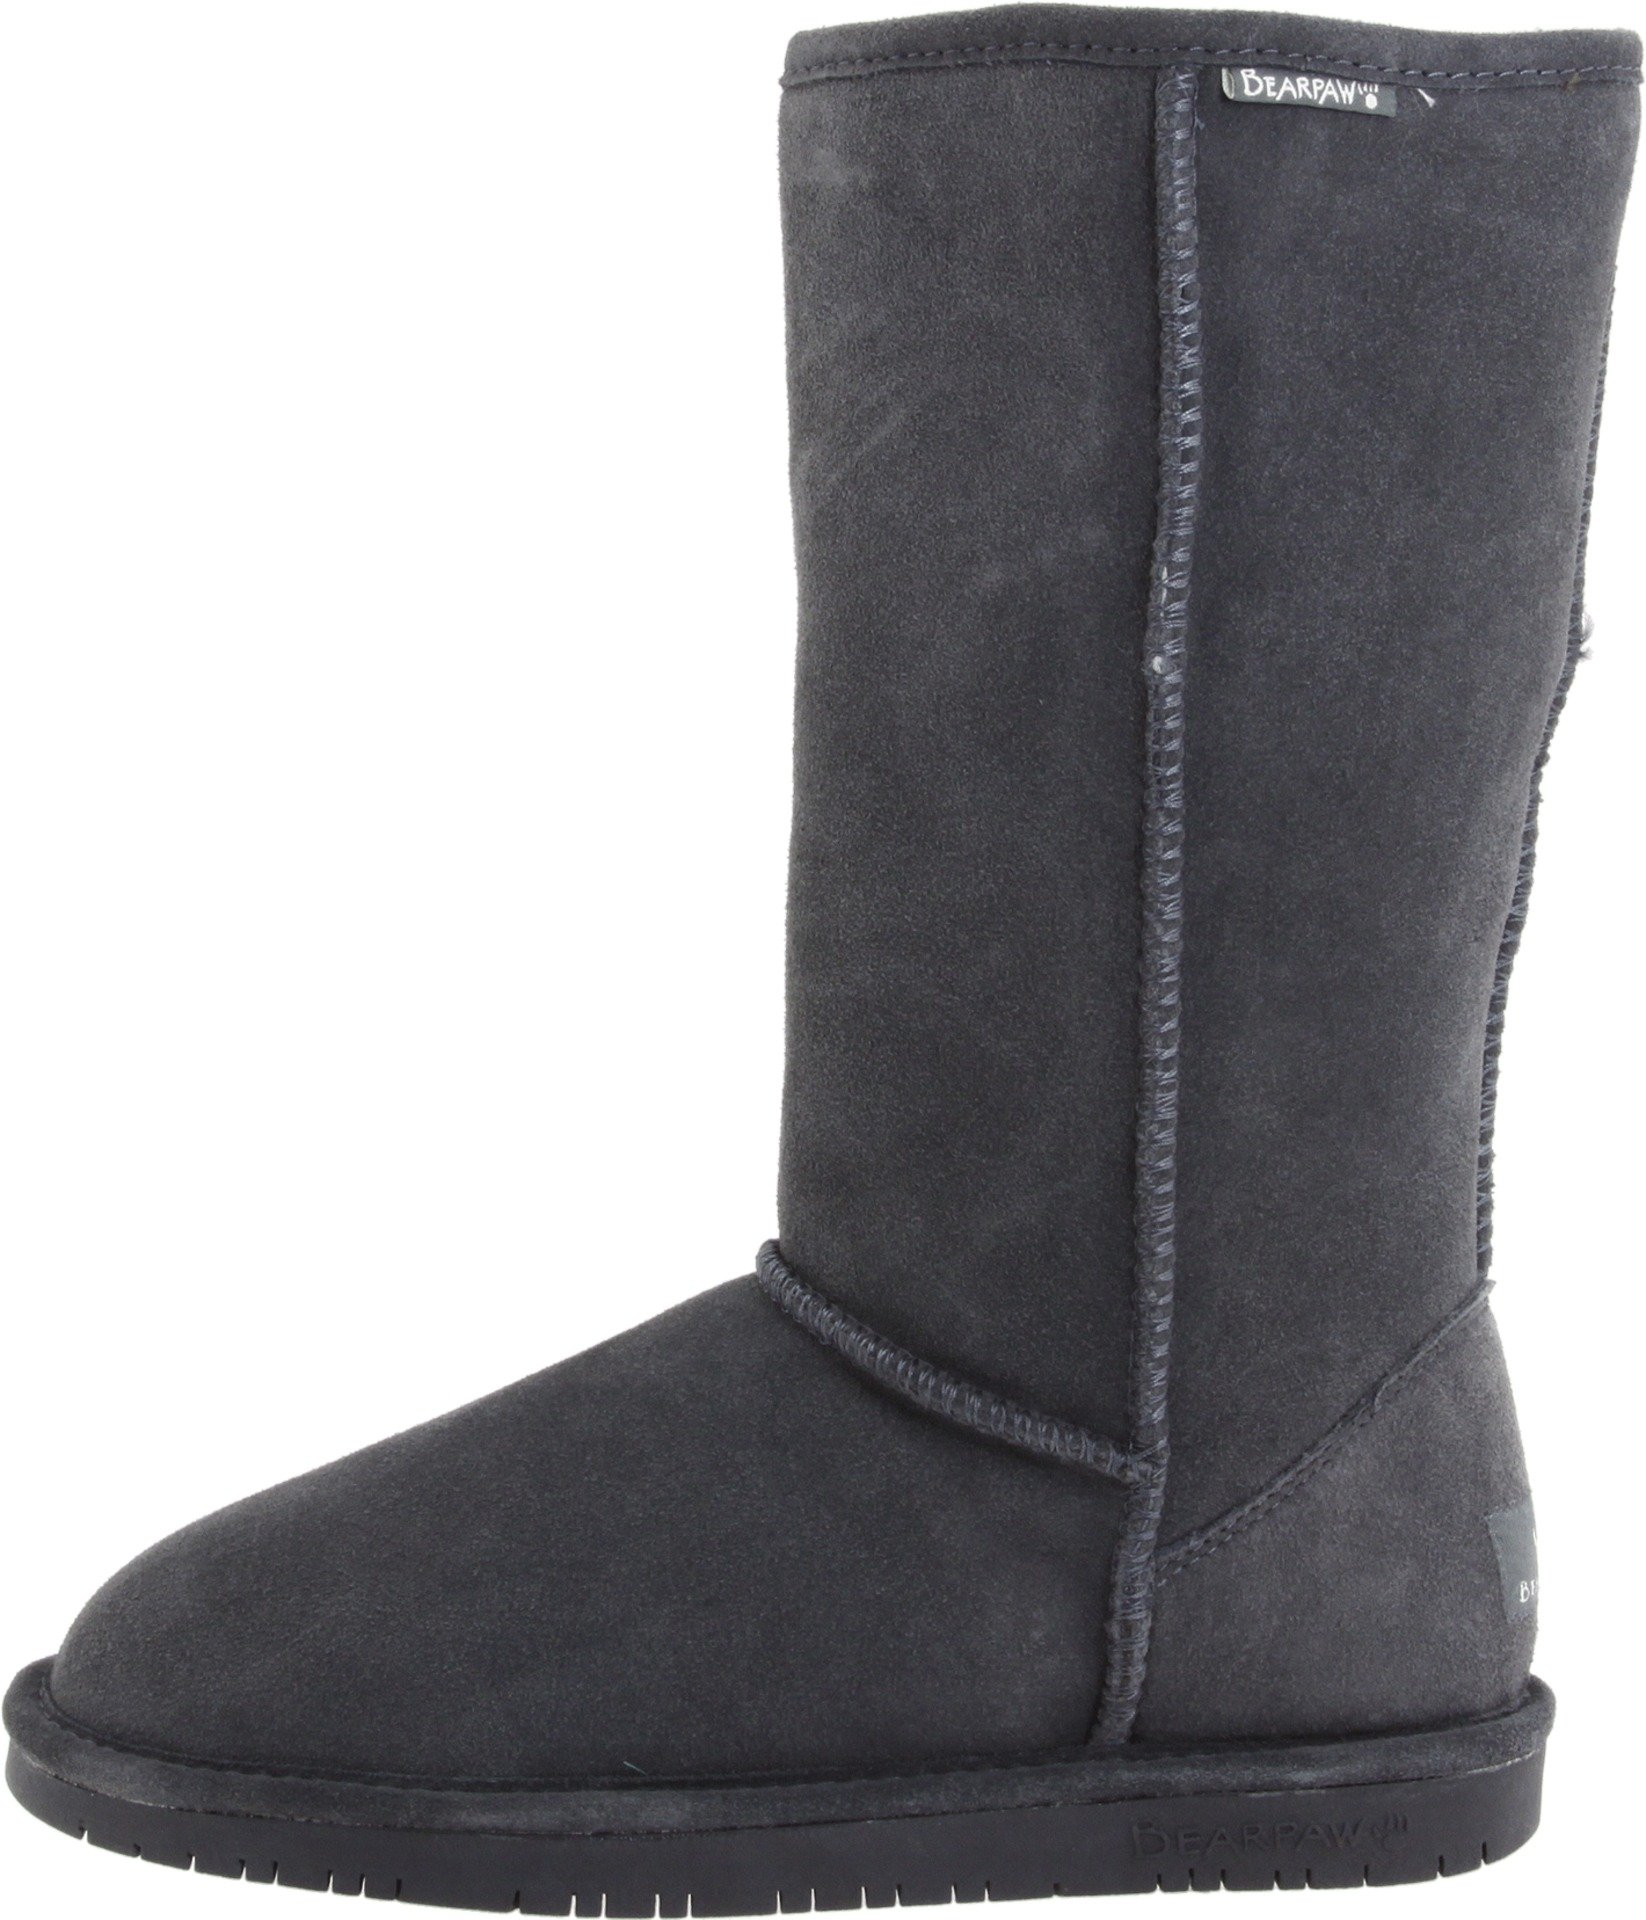 BEARPAW Women's Emma Tall Winter Boot, Charcoal, 9 M US by BEARPAW (Image #5)